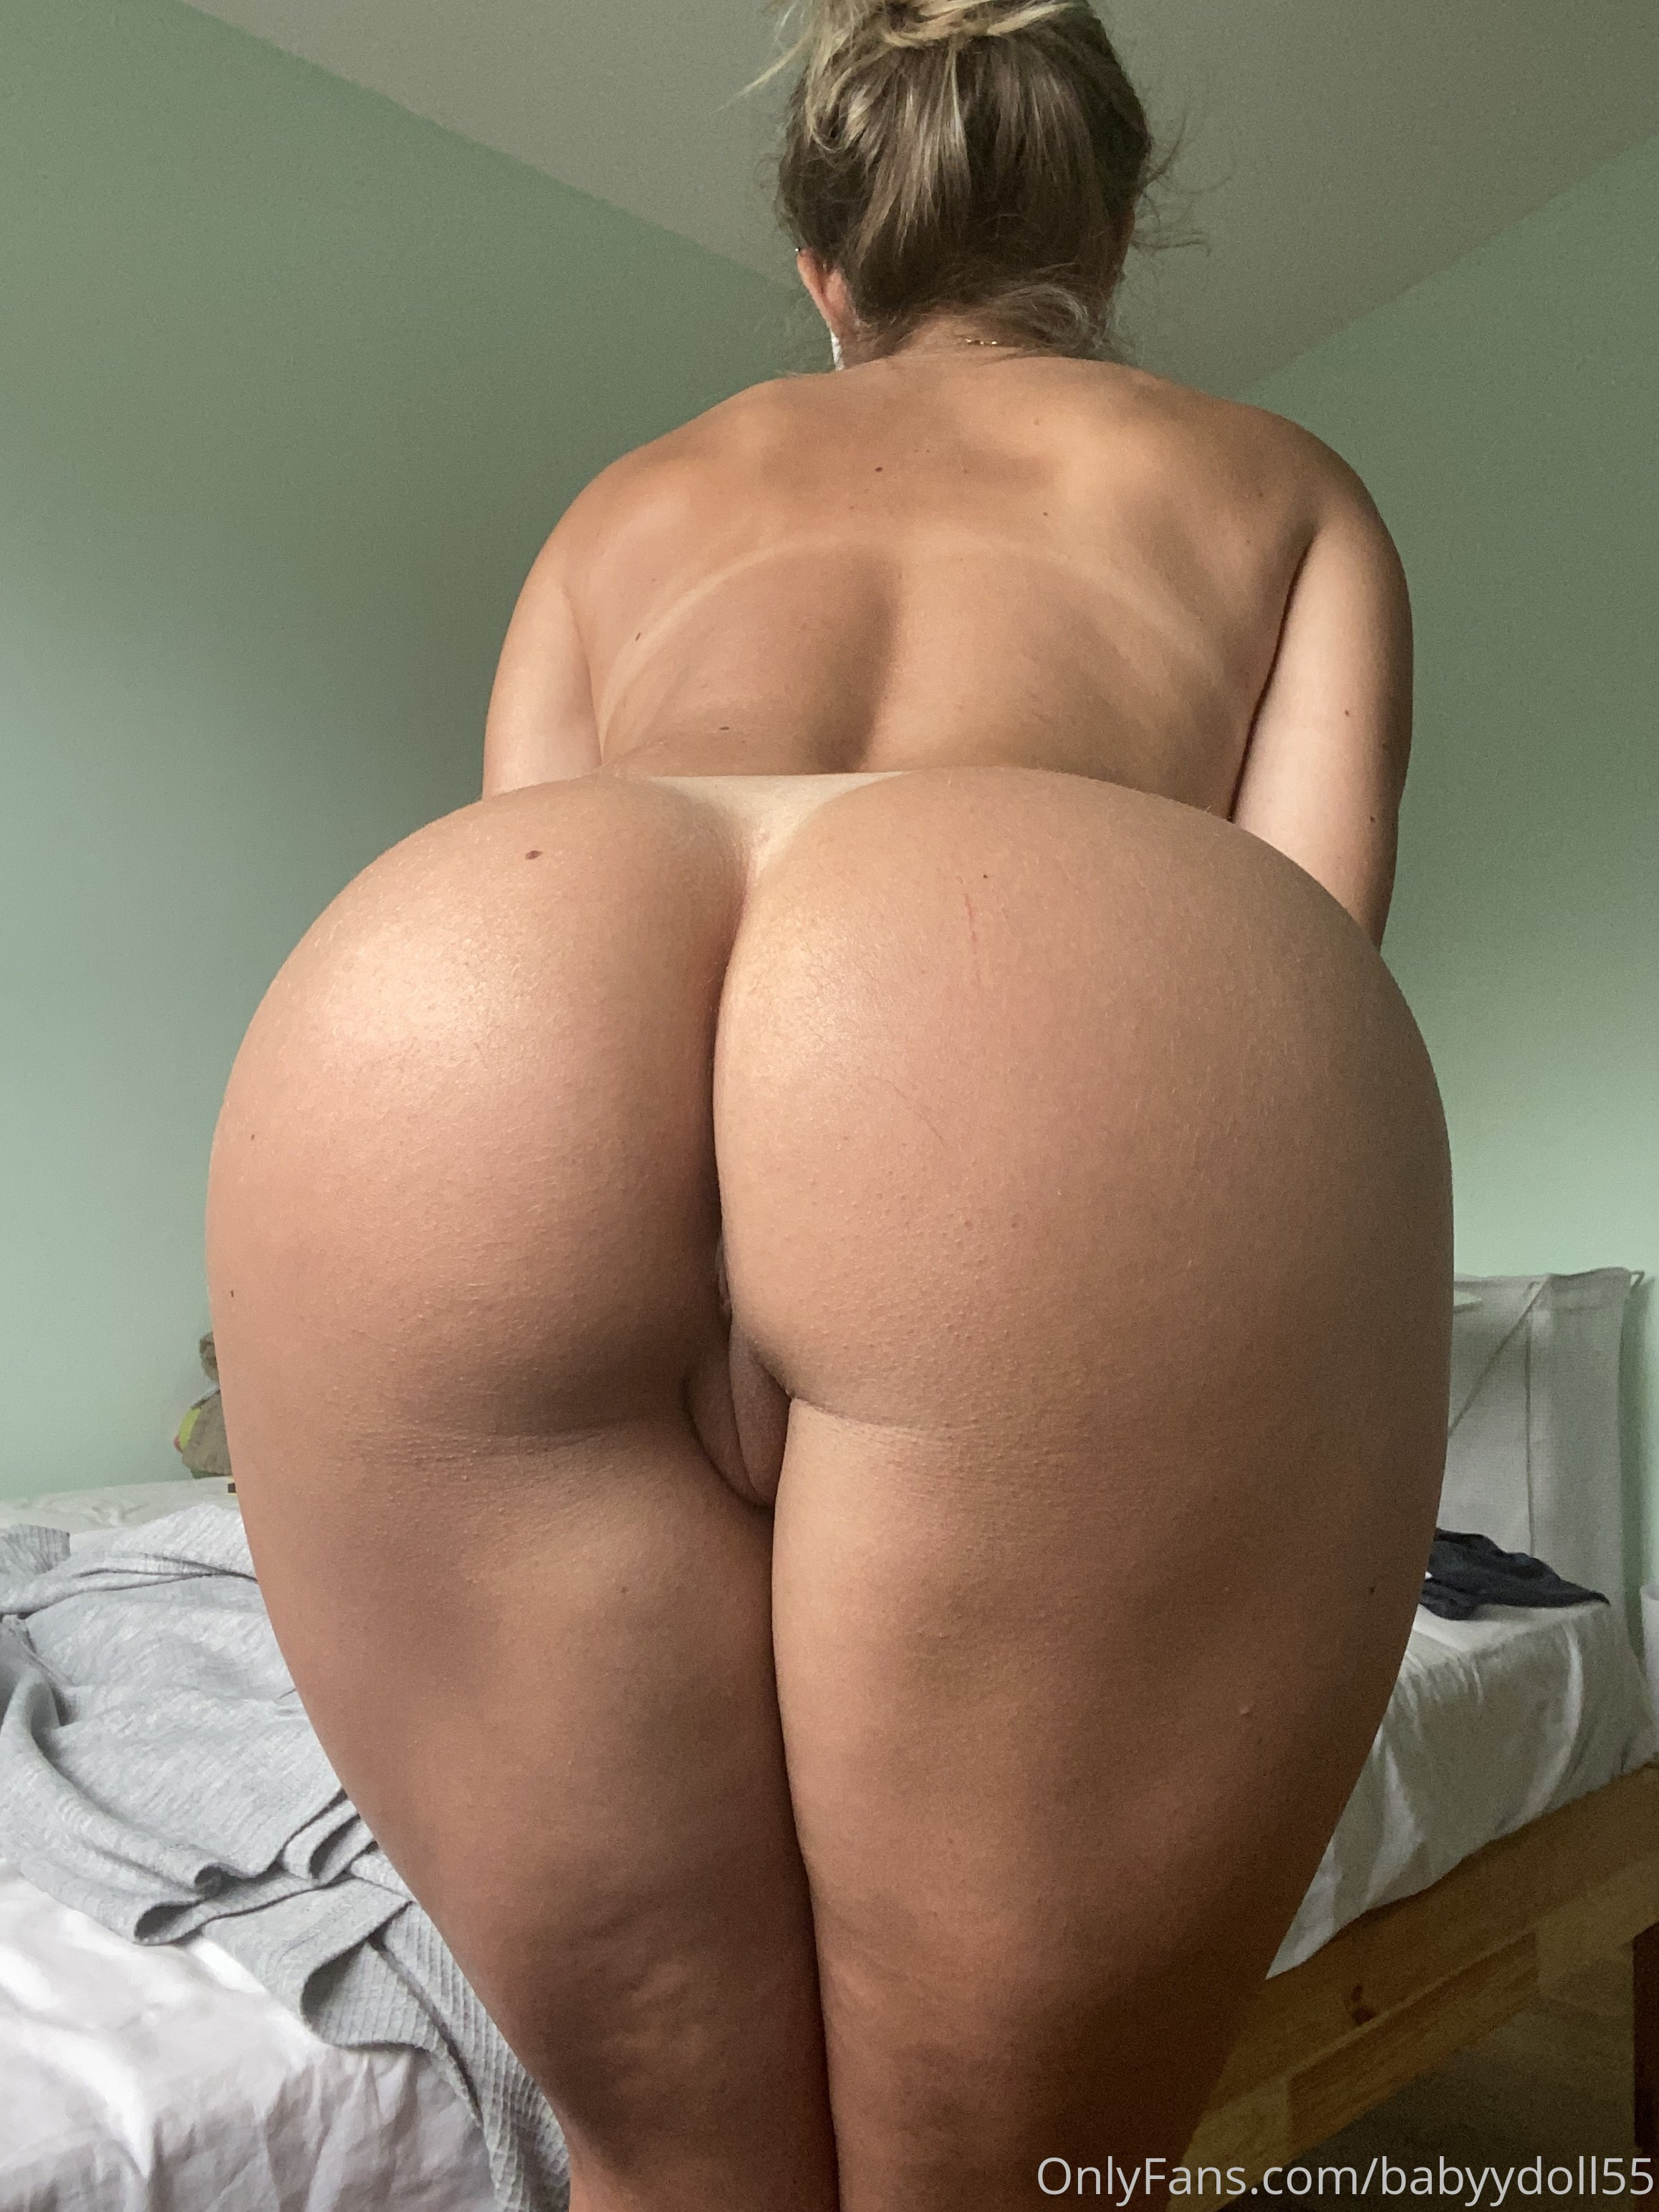 Kiera Young Onlyfans 0020